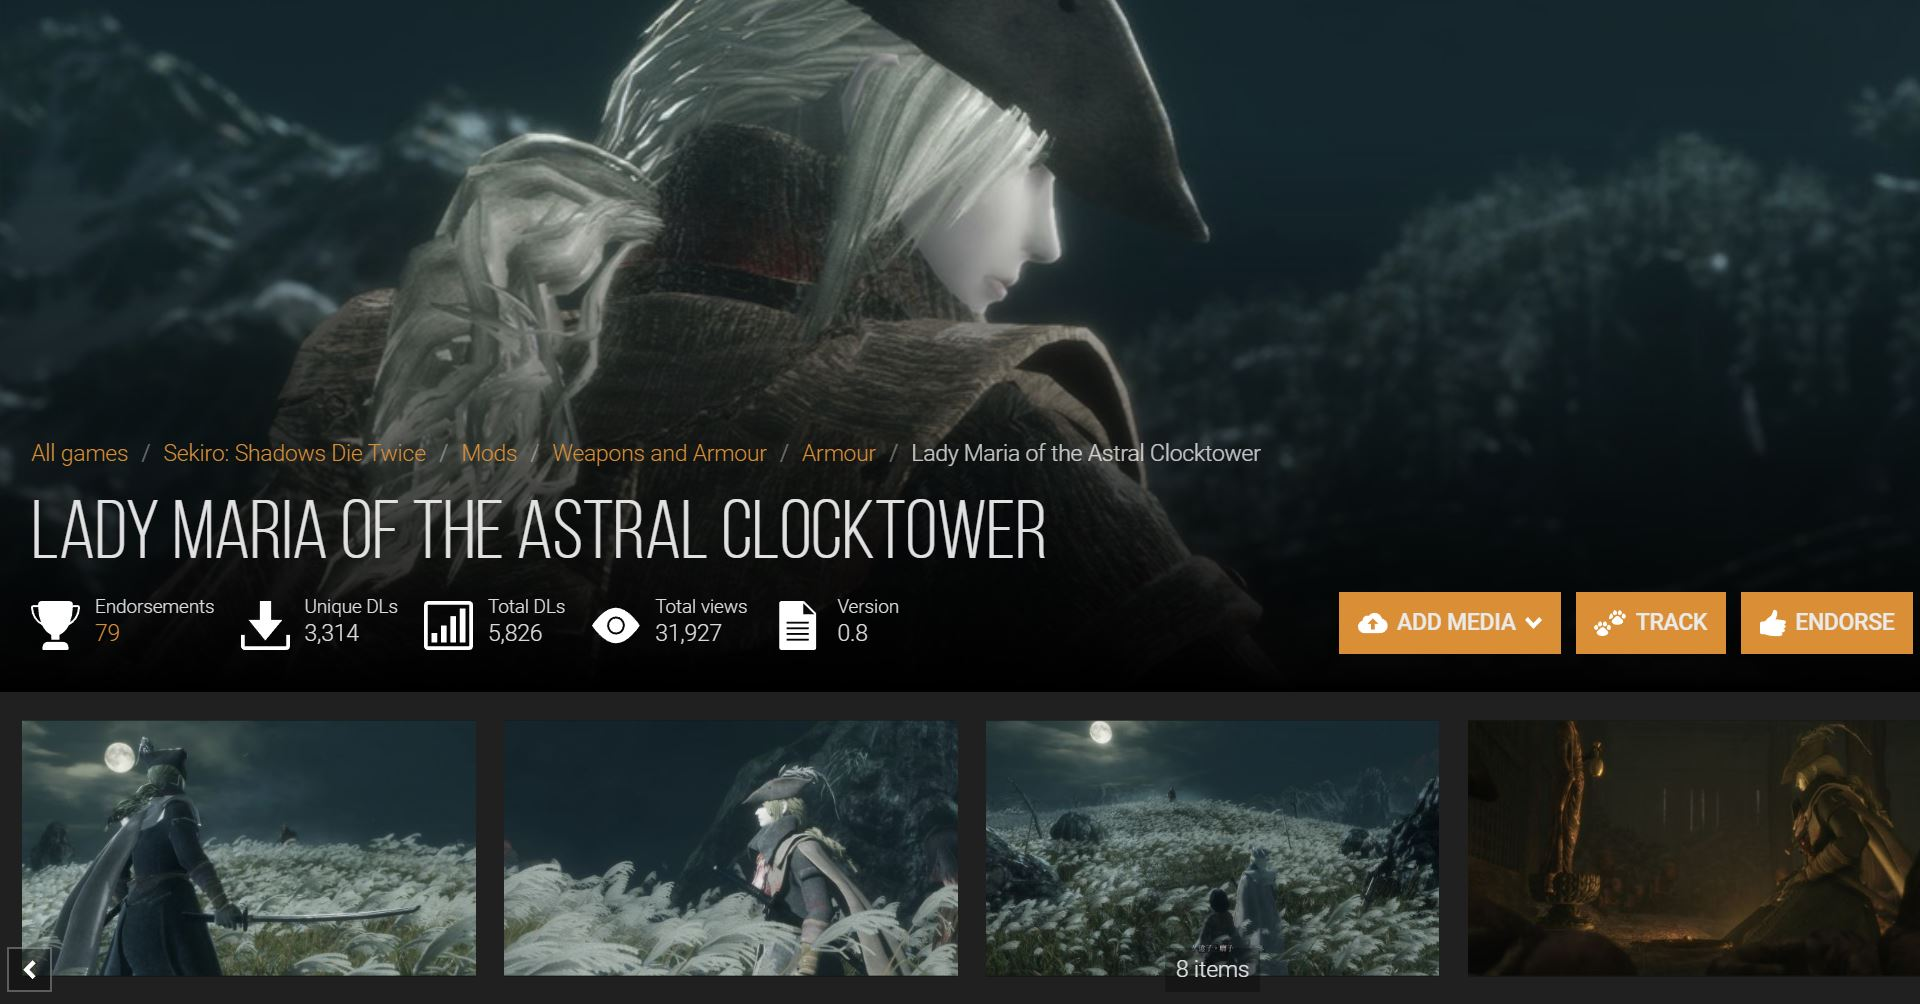 Lady Maria of the Astral Clocktowerのイメージ画像-2